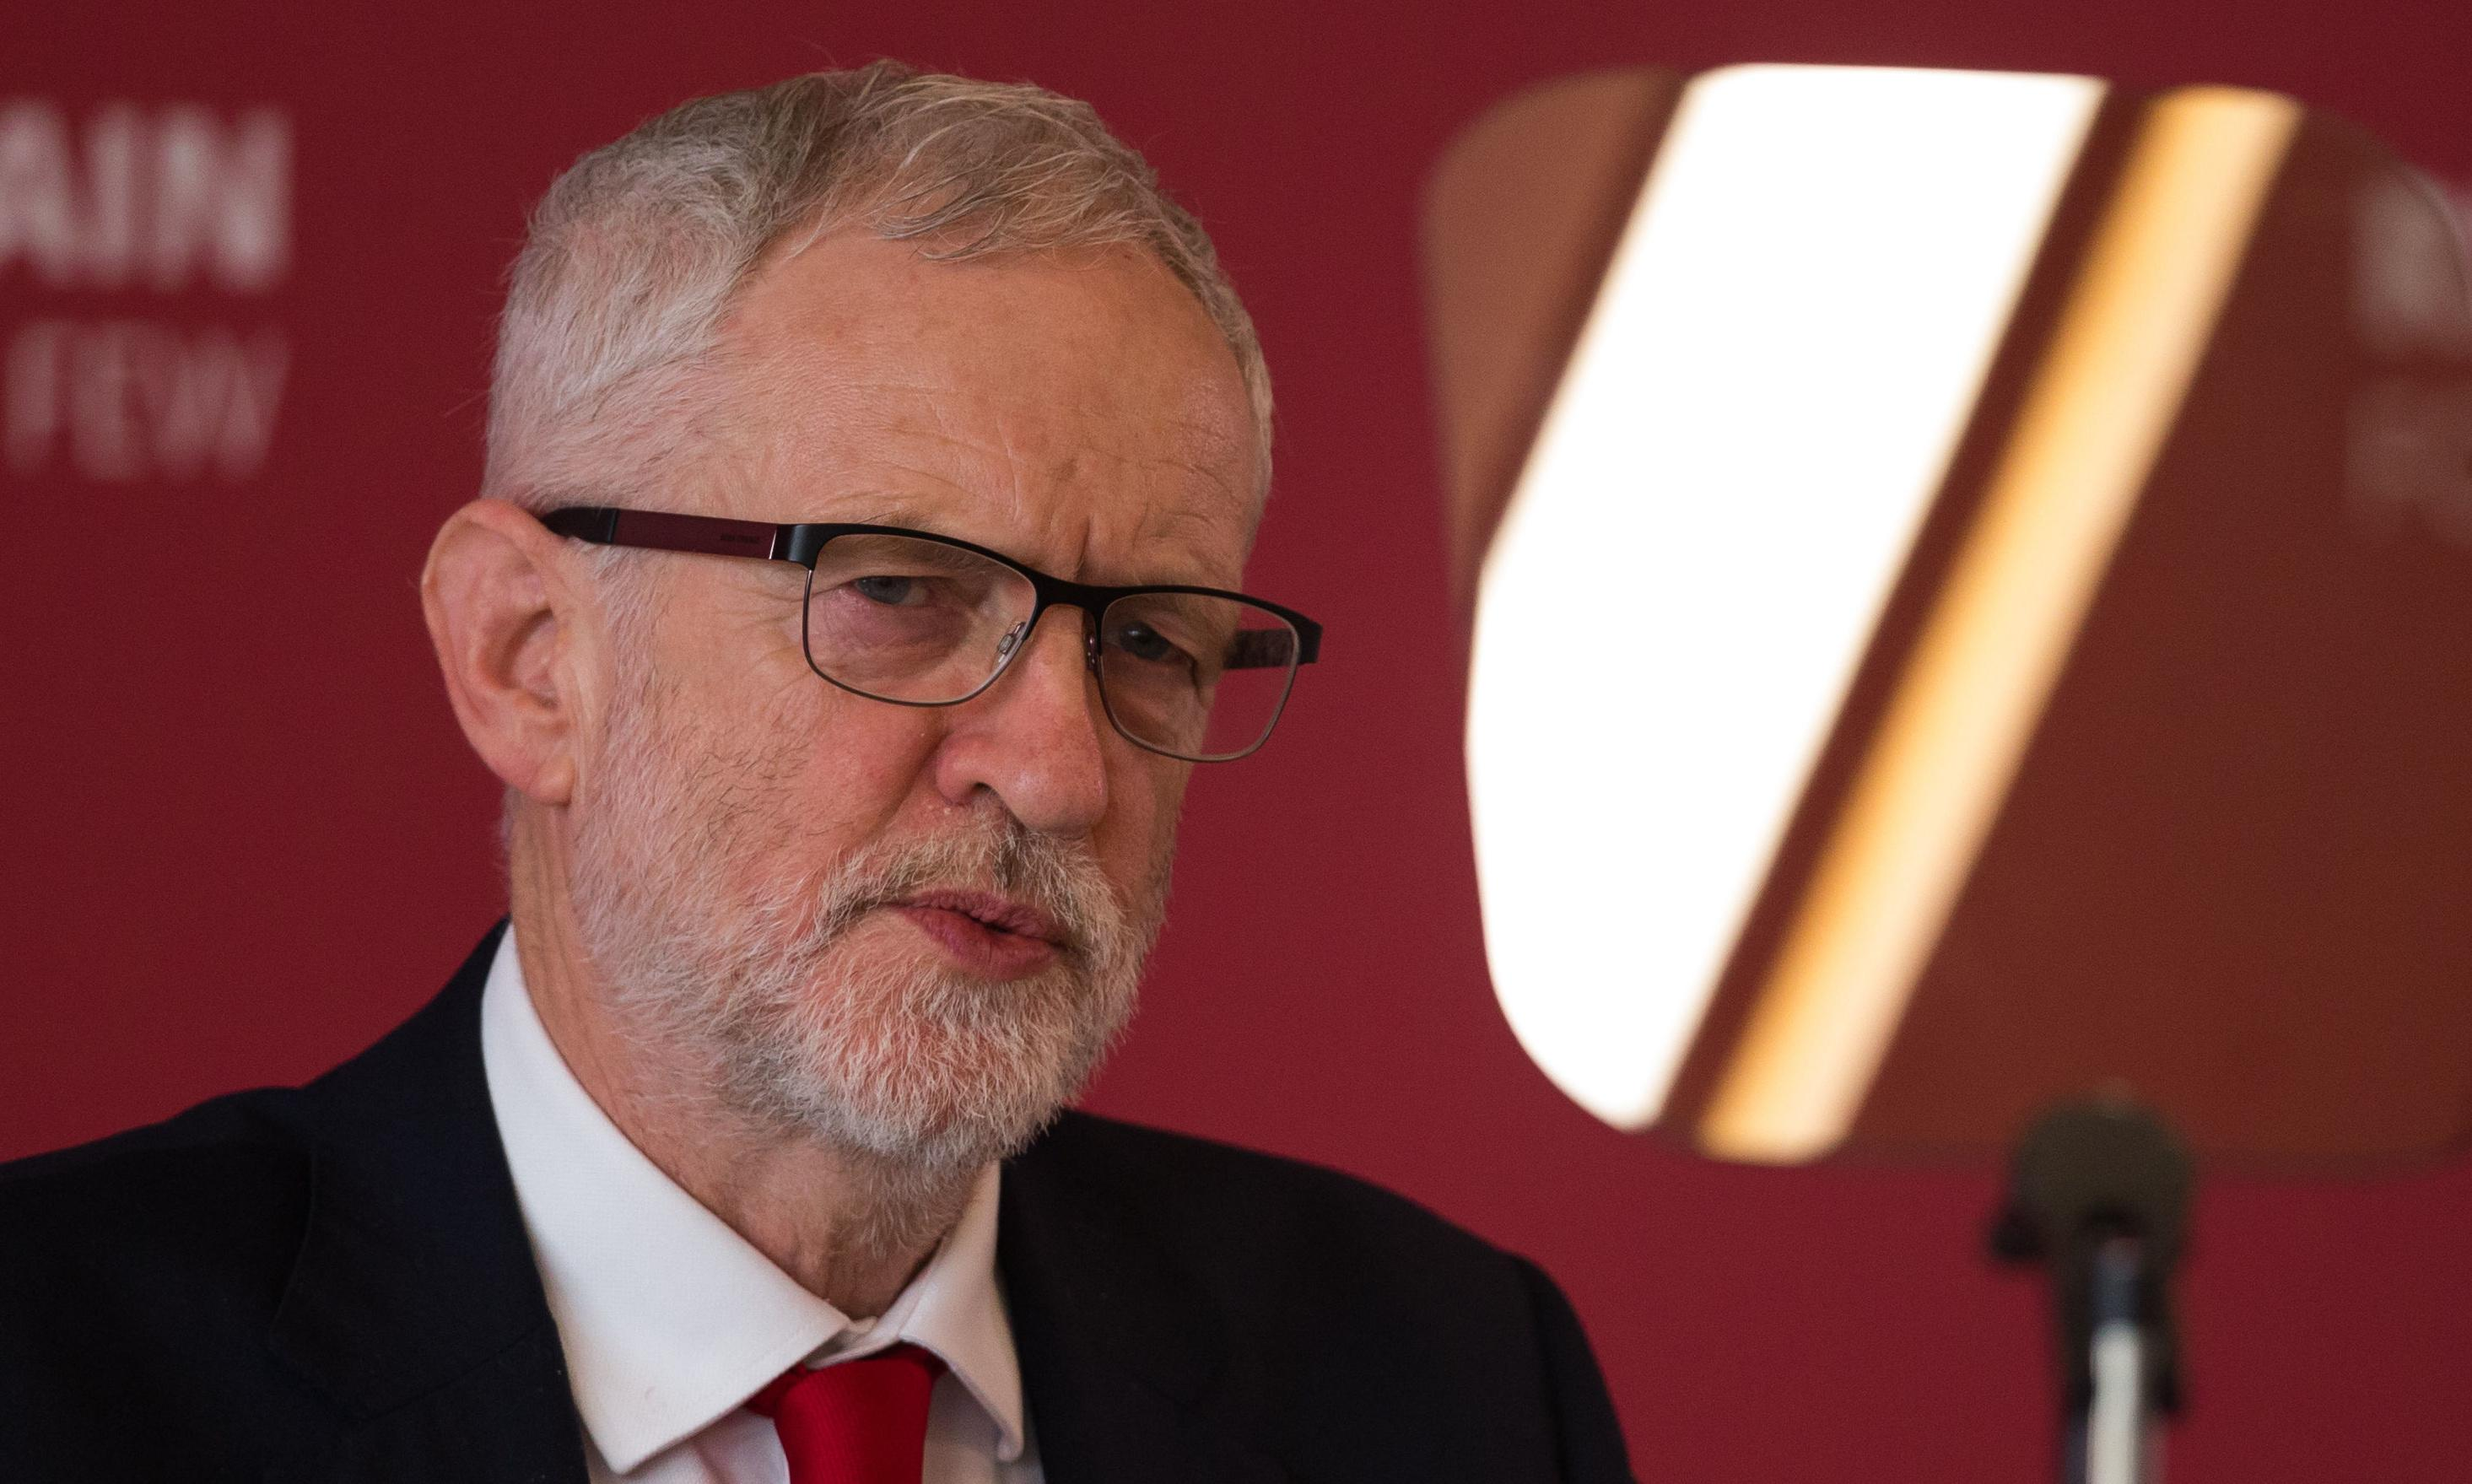 Labour green group urges Corbyn to back second Brexit vote